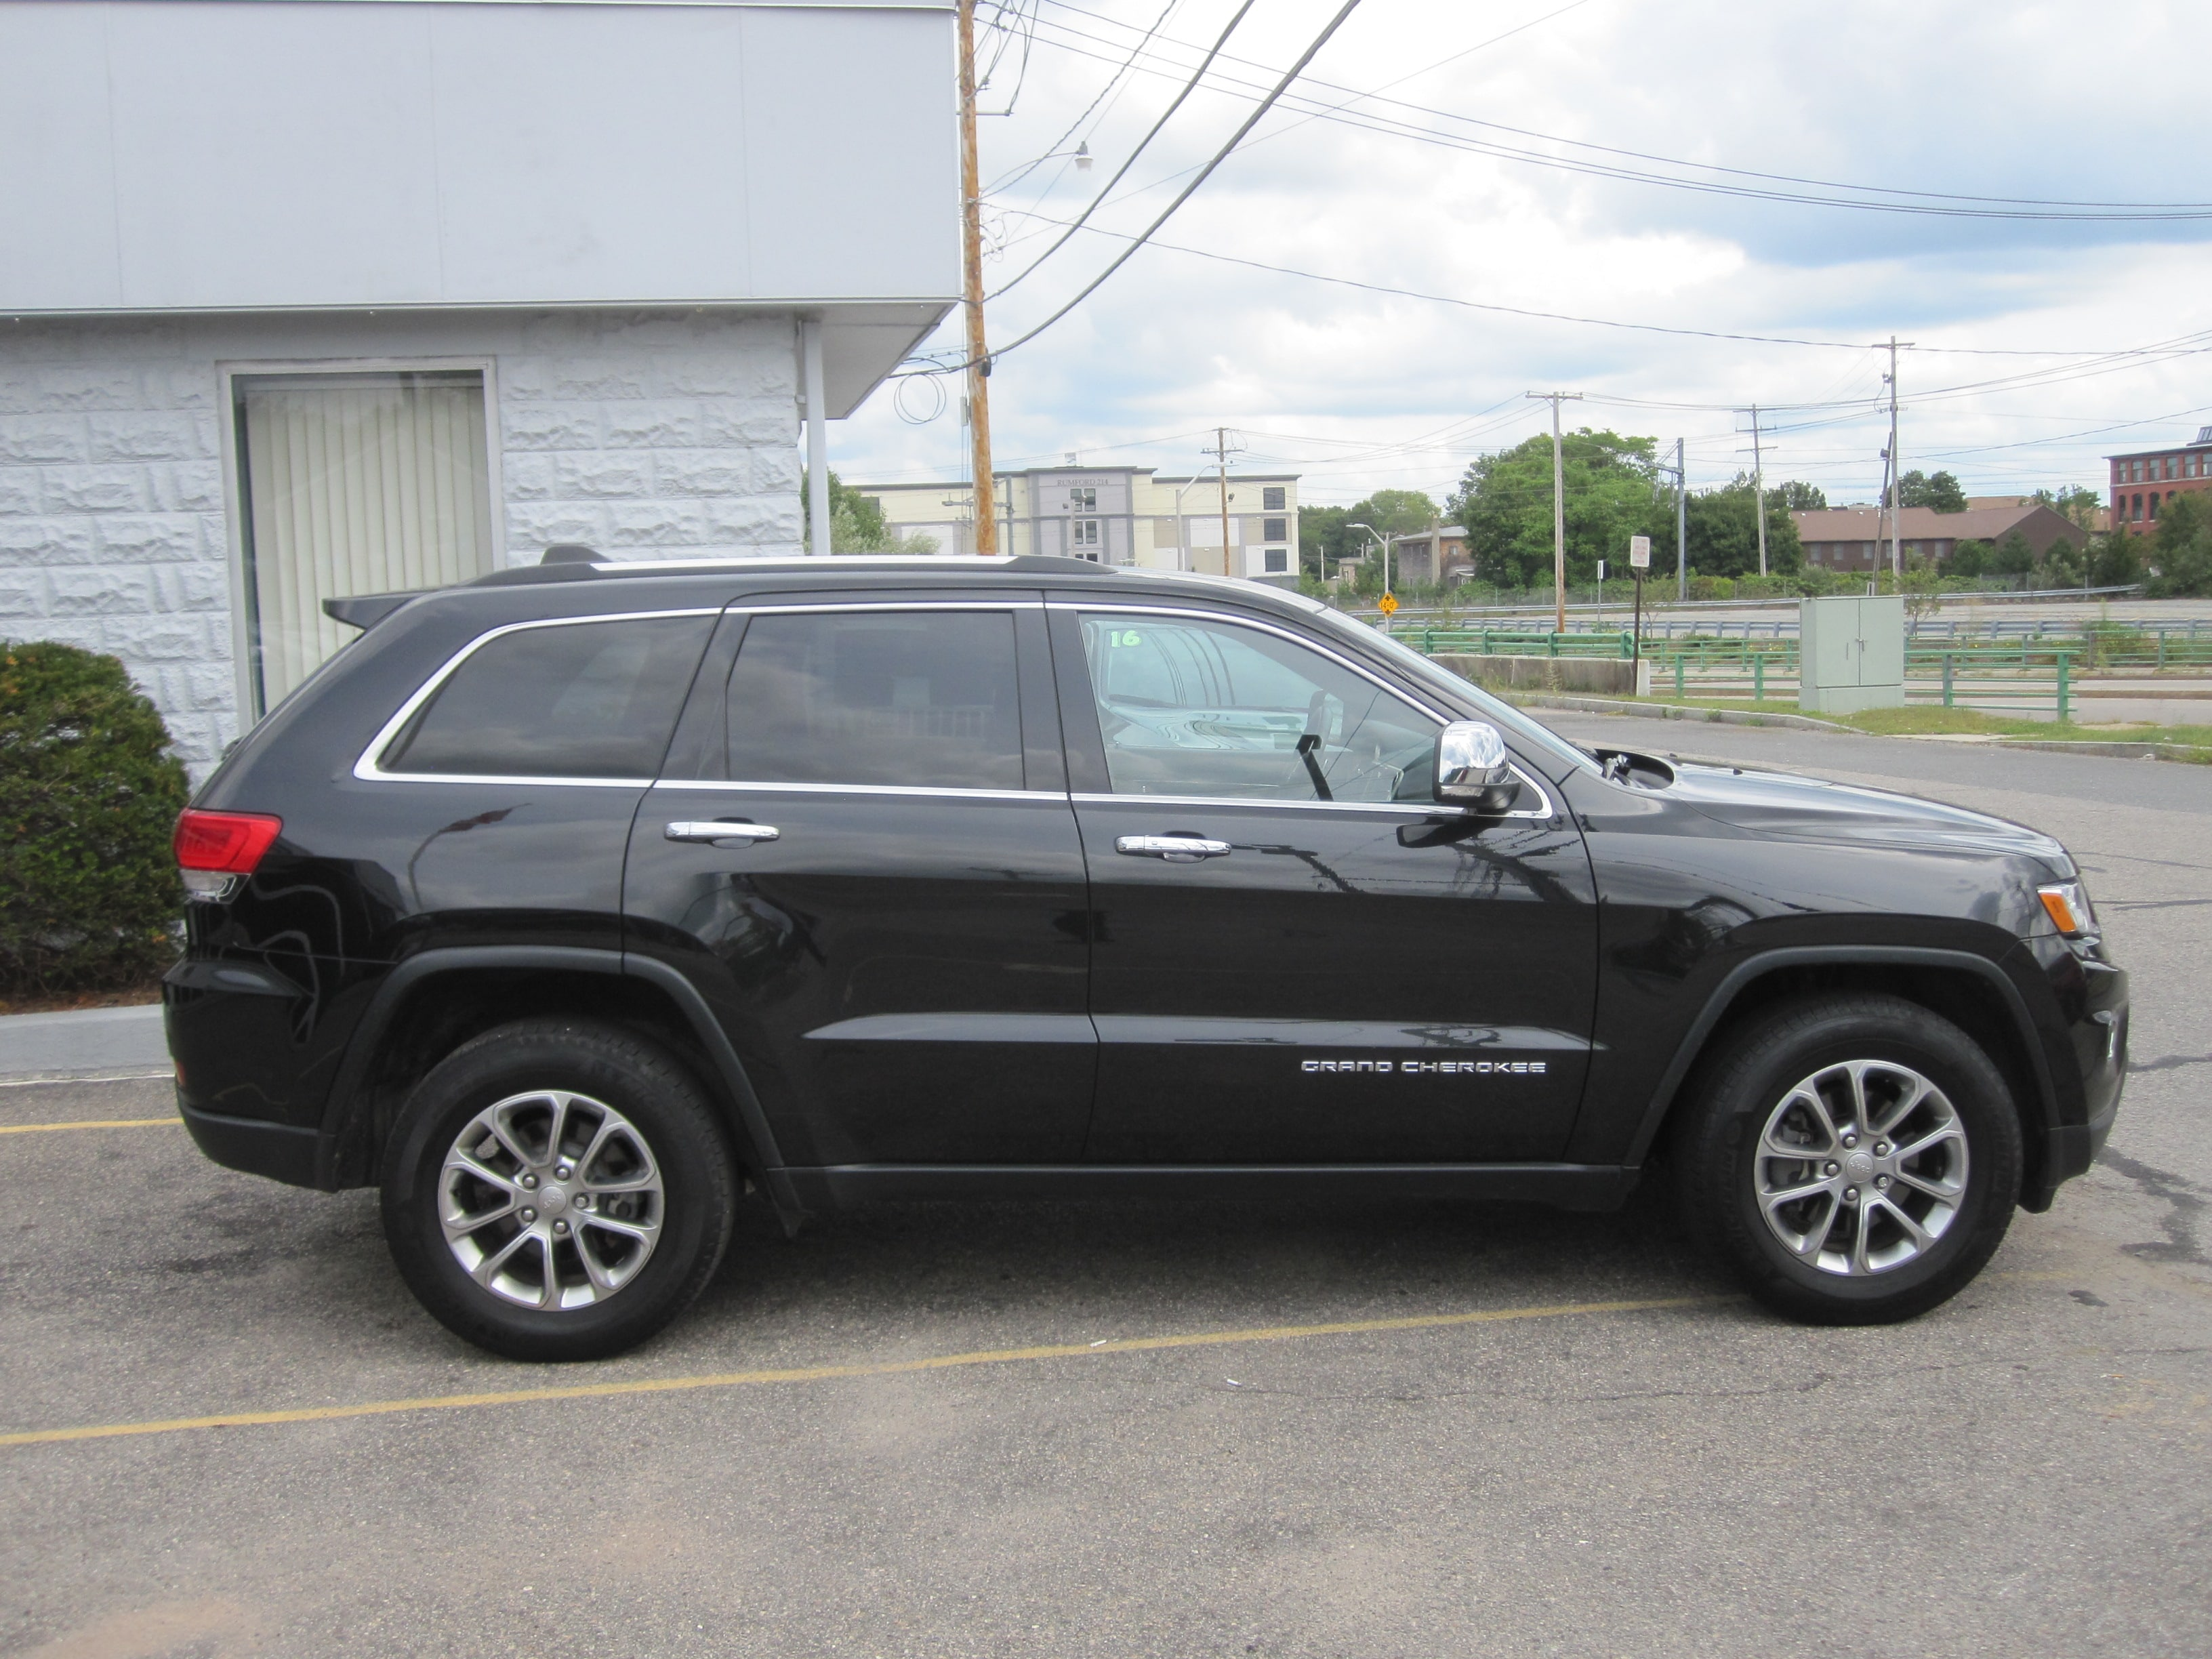 used 2015 jeep grand cherokee limited 4x4 for sale in mansfield ma vin 1c4rjfbg2fc865450. Black Bedroom Furniture Sets. Home Design Ideas